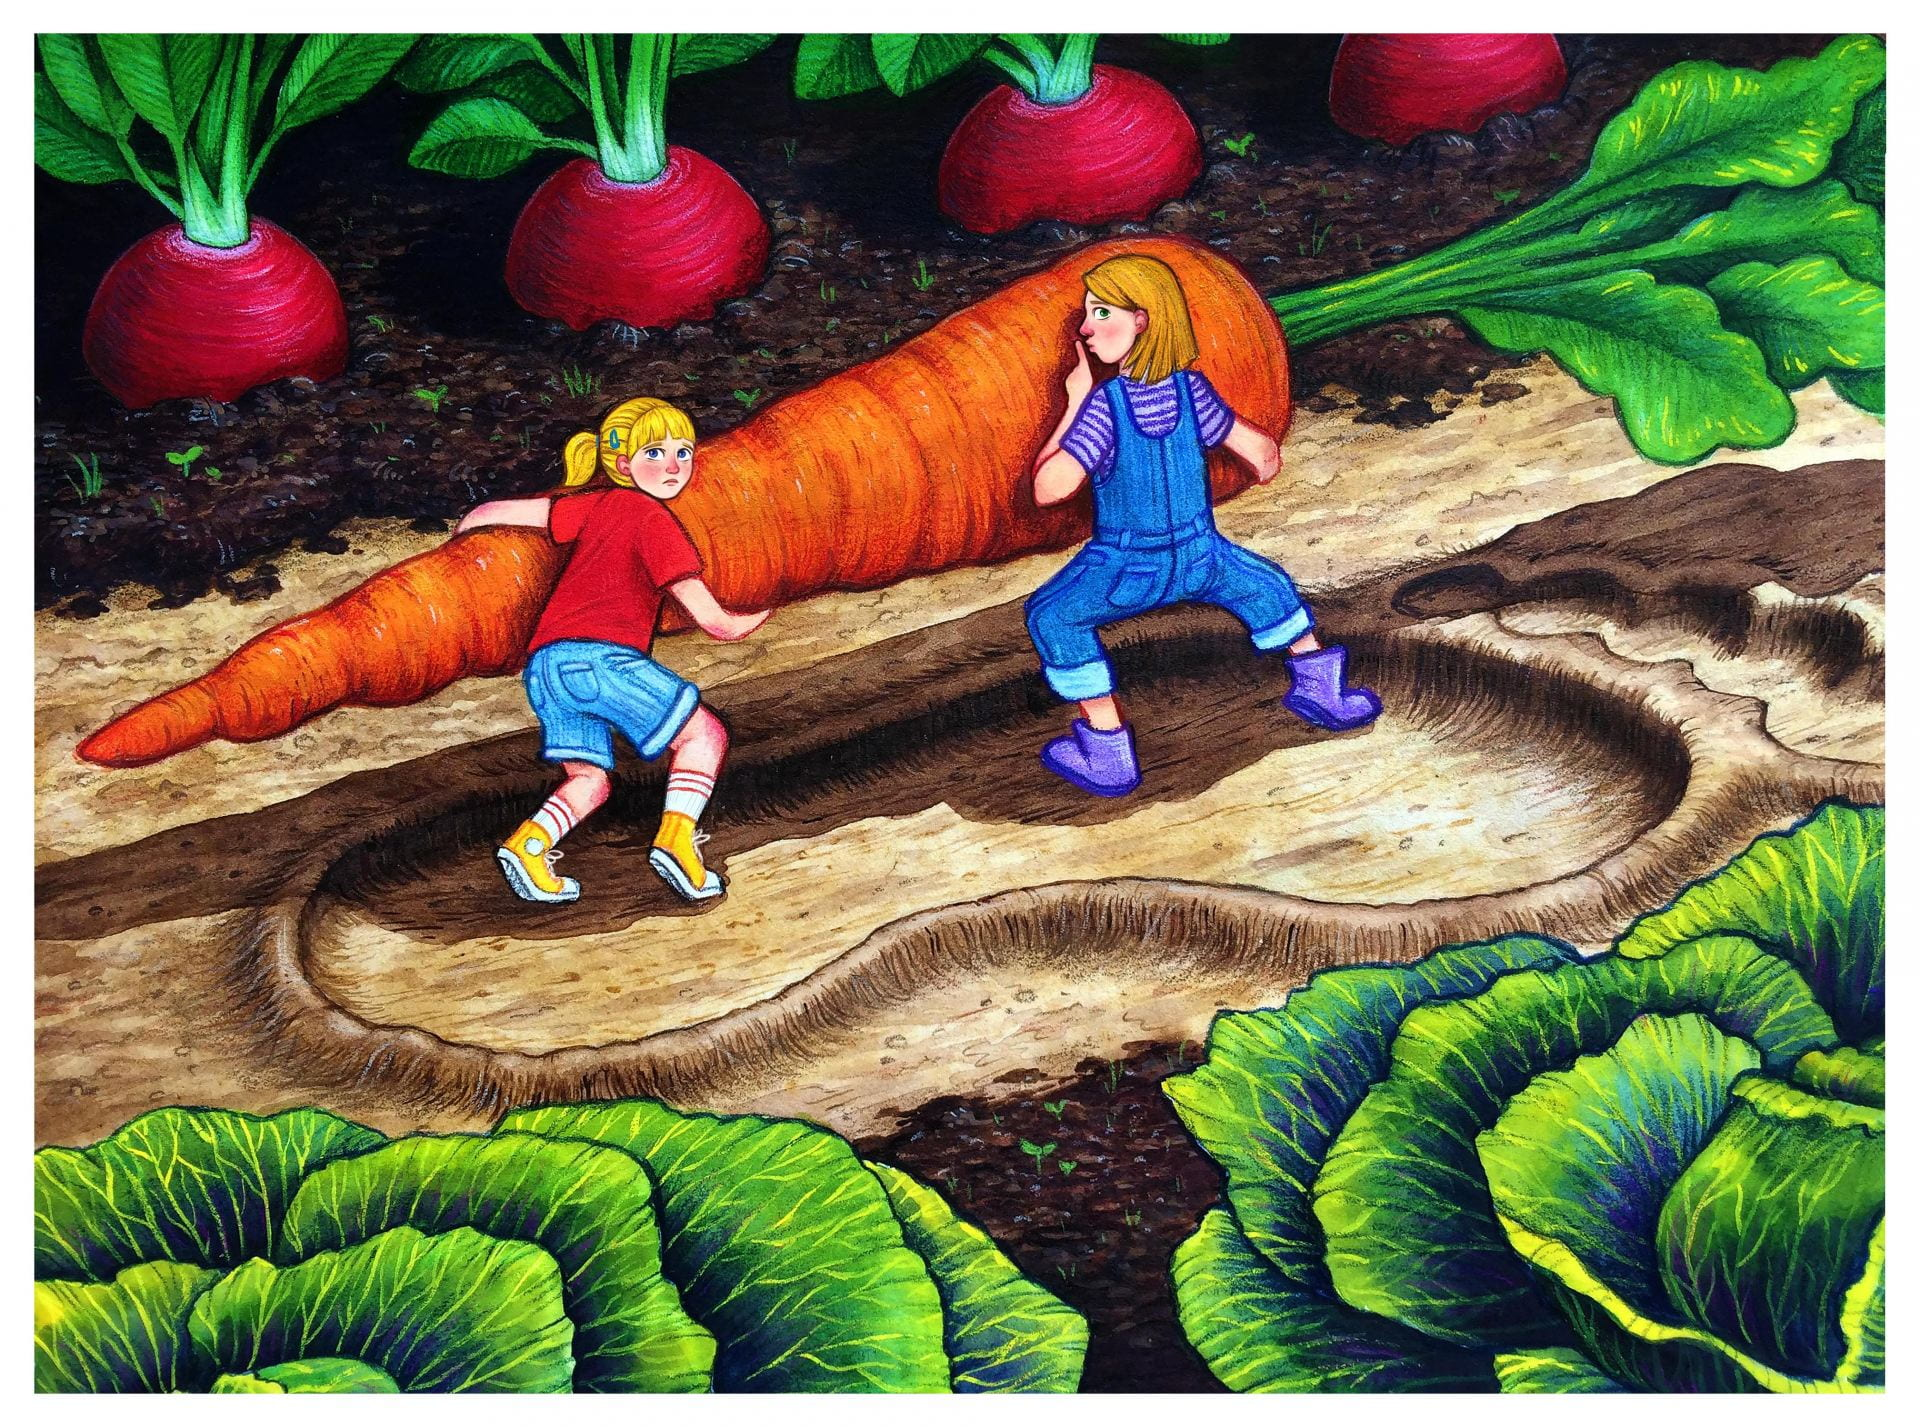 An illustration, two children, lifting a giant carrot within a garden of giant vegetables.